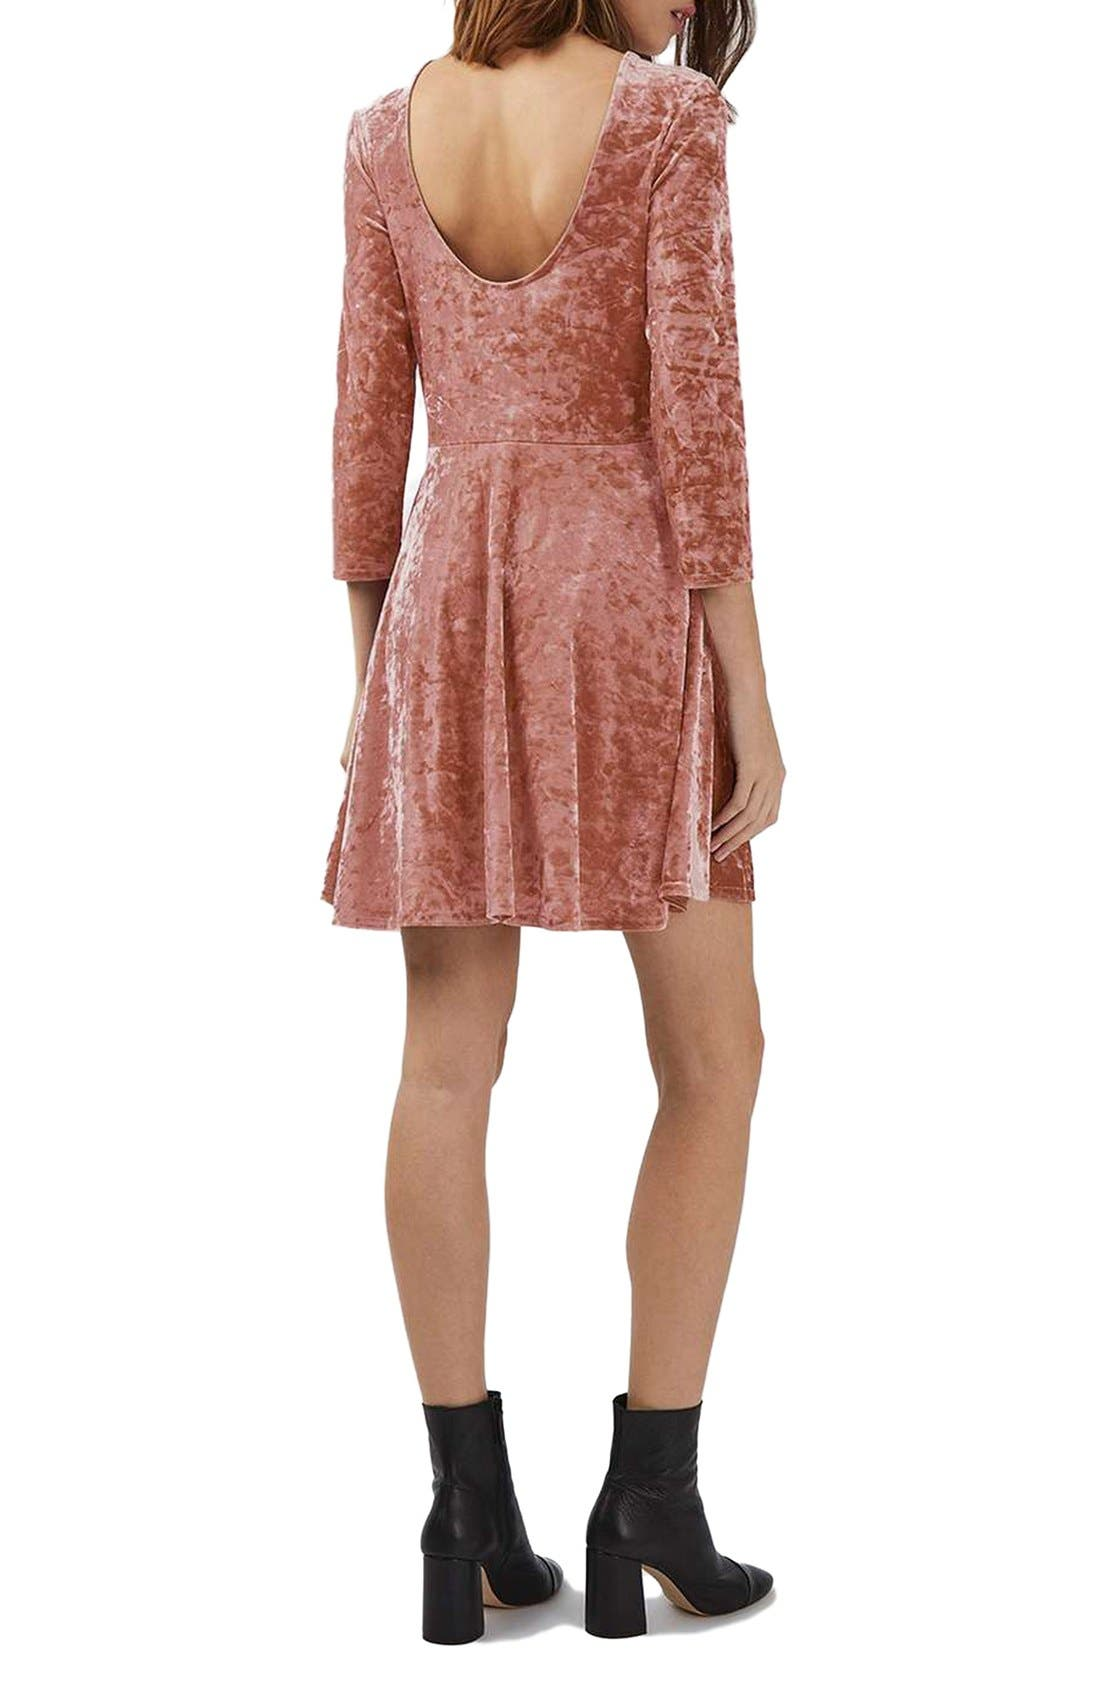 Crushed Velvet Dress,                             Alternate thumbnail 3, color,                             650